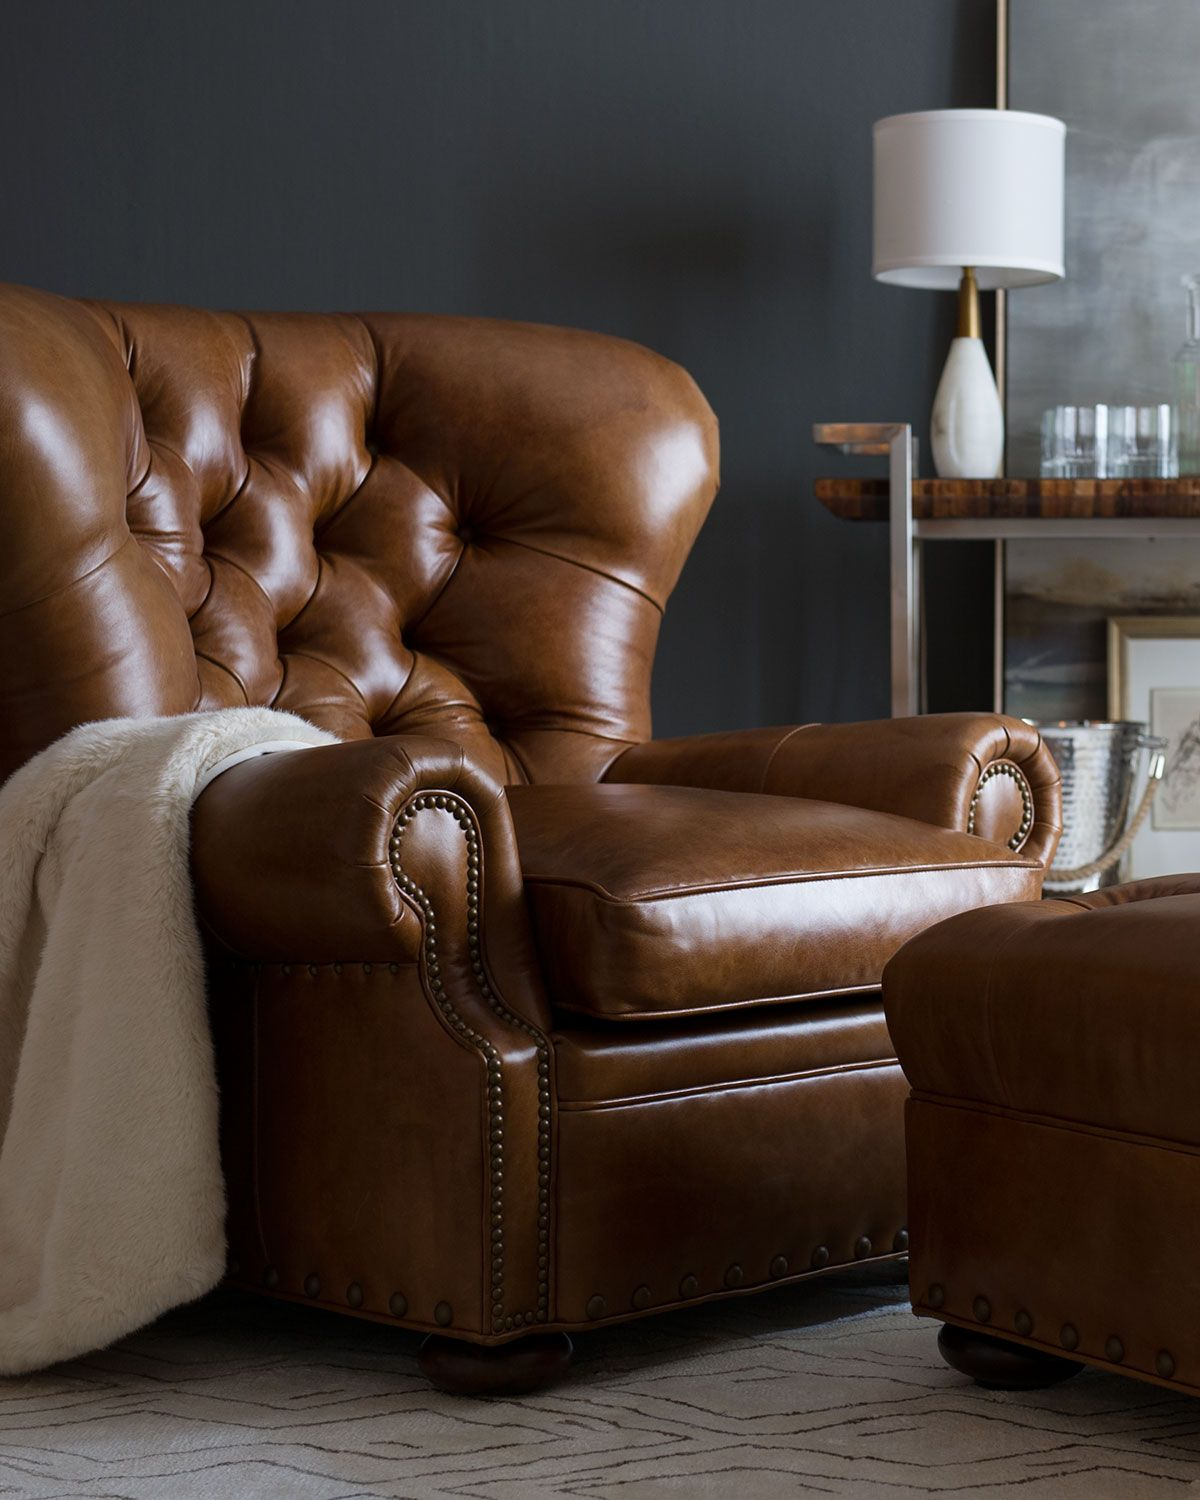 Lansbury tufted leather chair ottoman